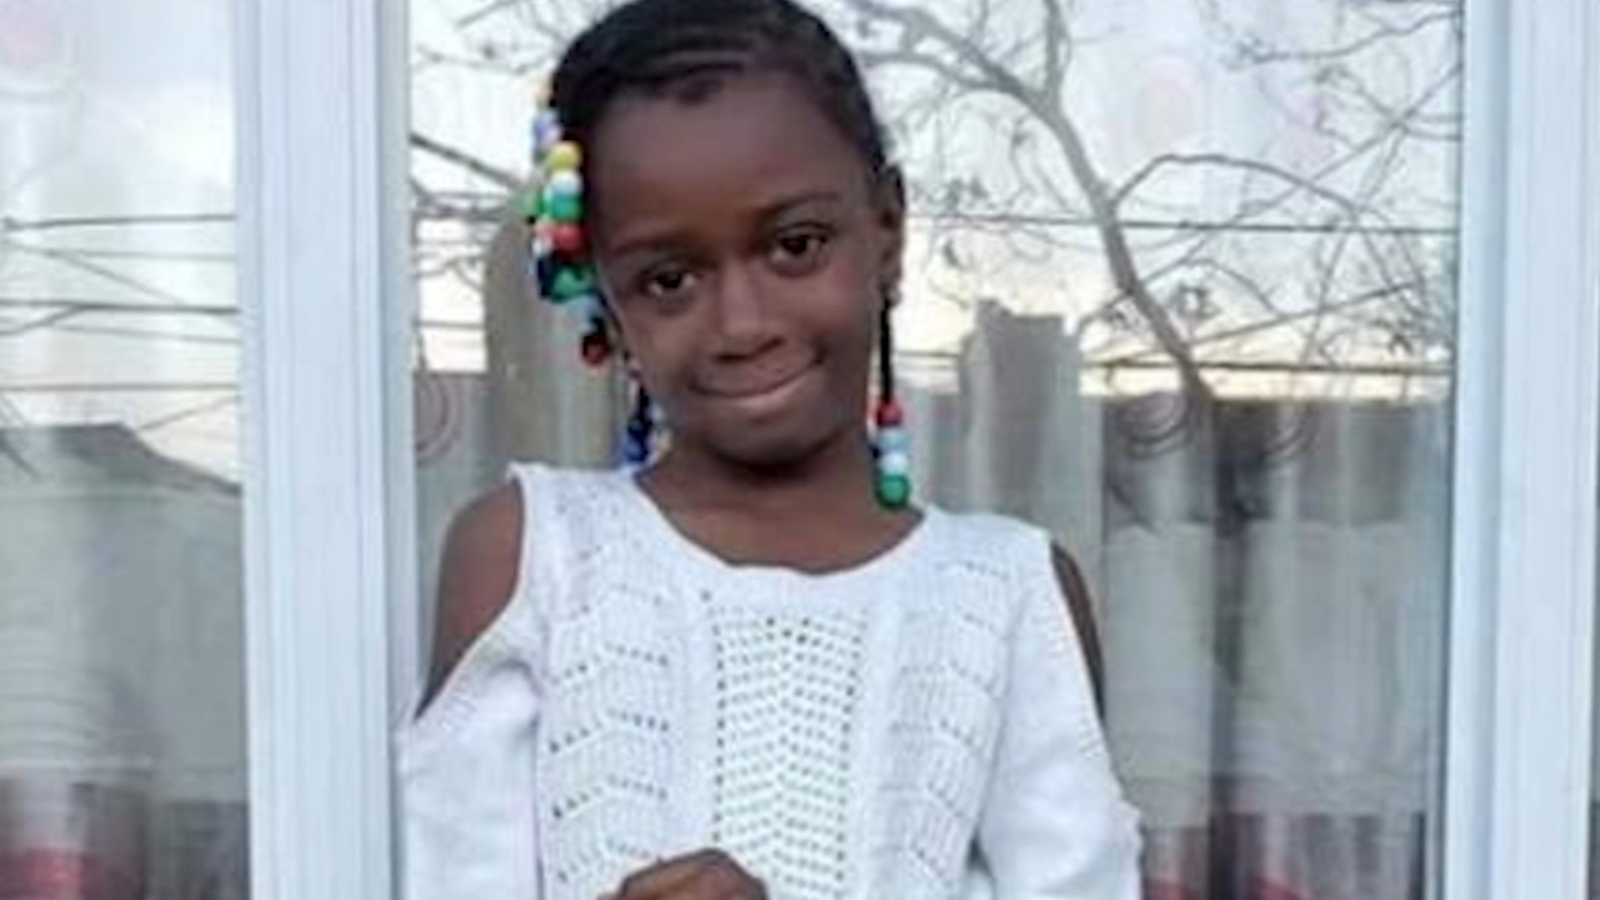 Seven-Year-Old Girl Killed After Shooting at High School Football Game in Pennsylvania